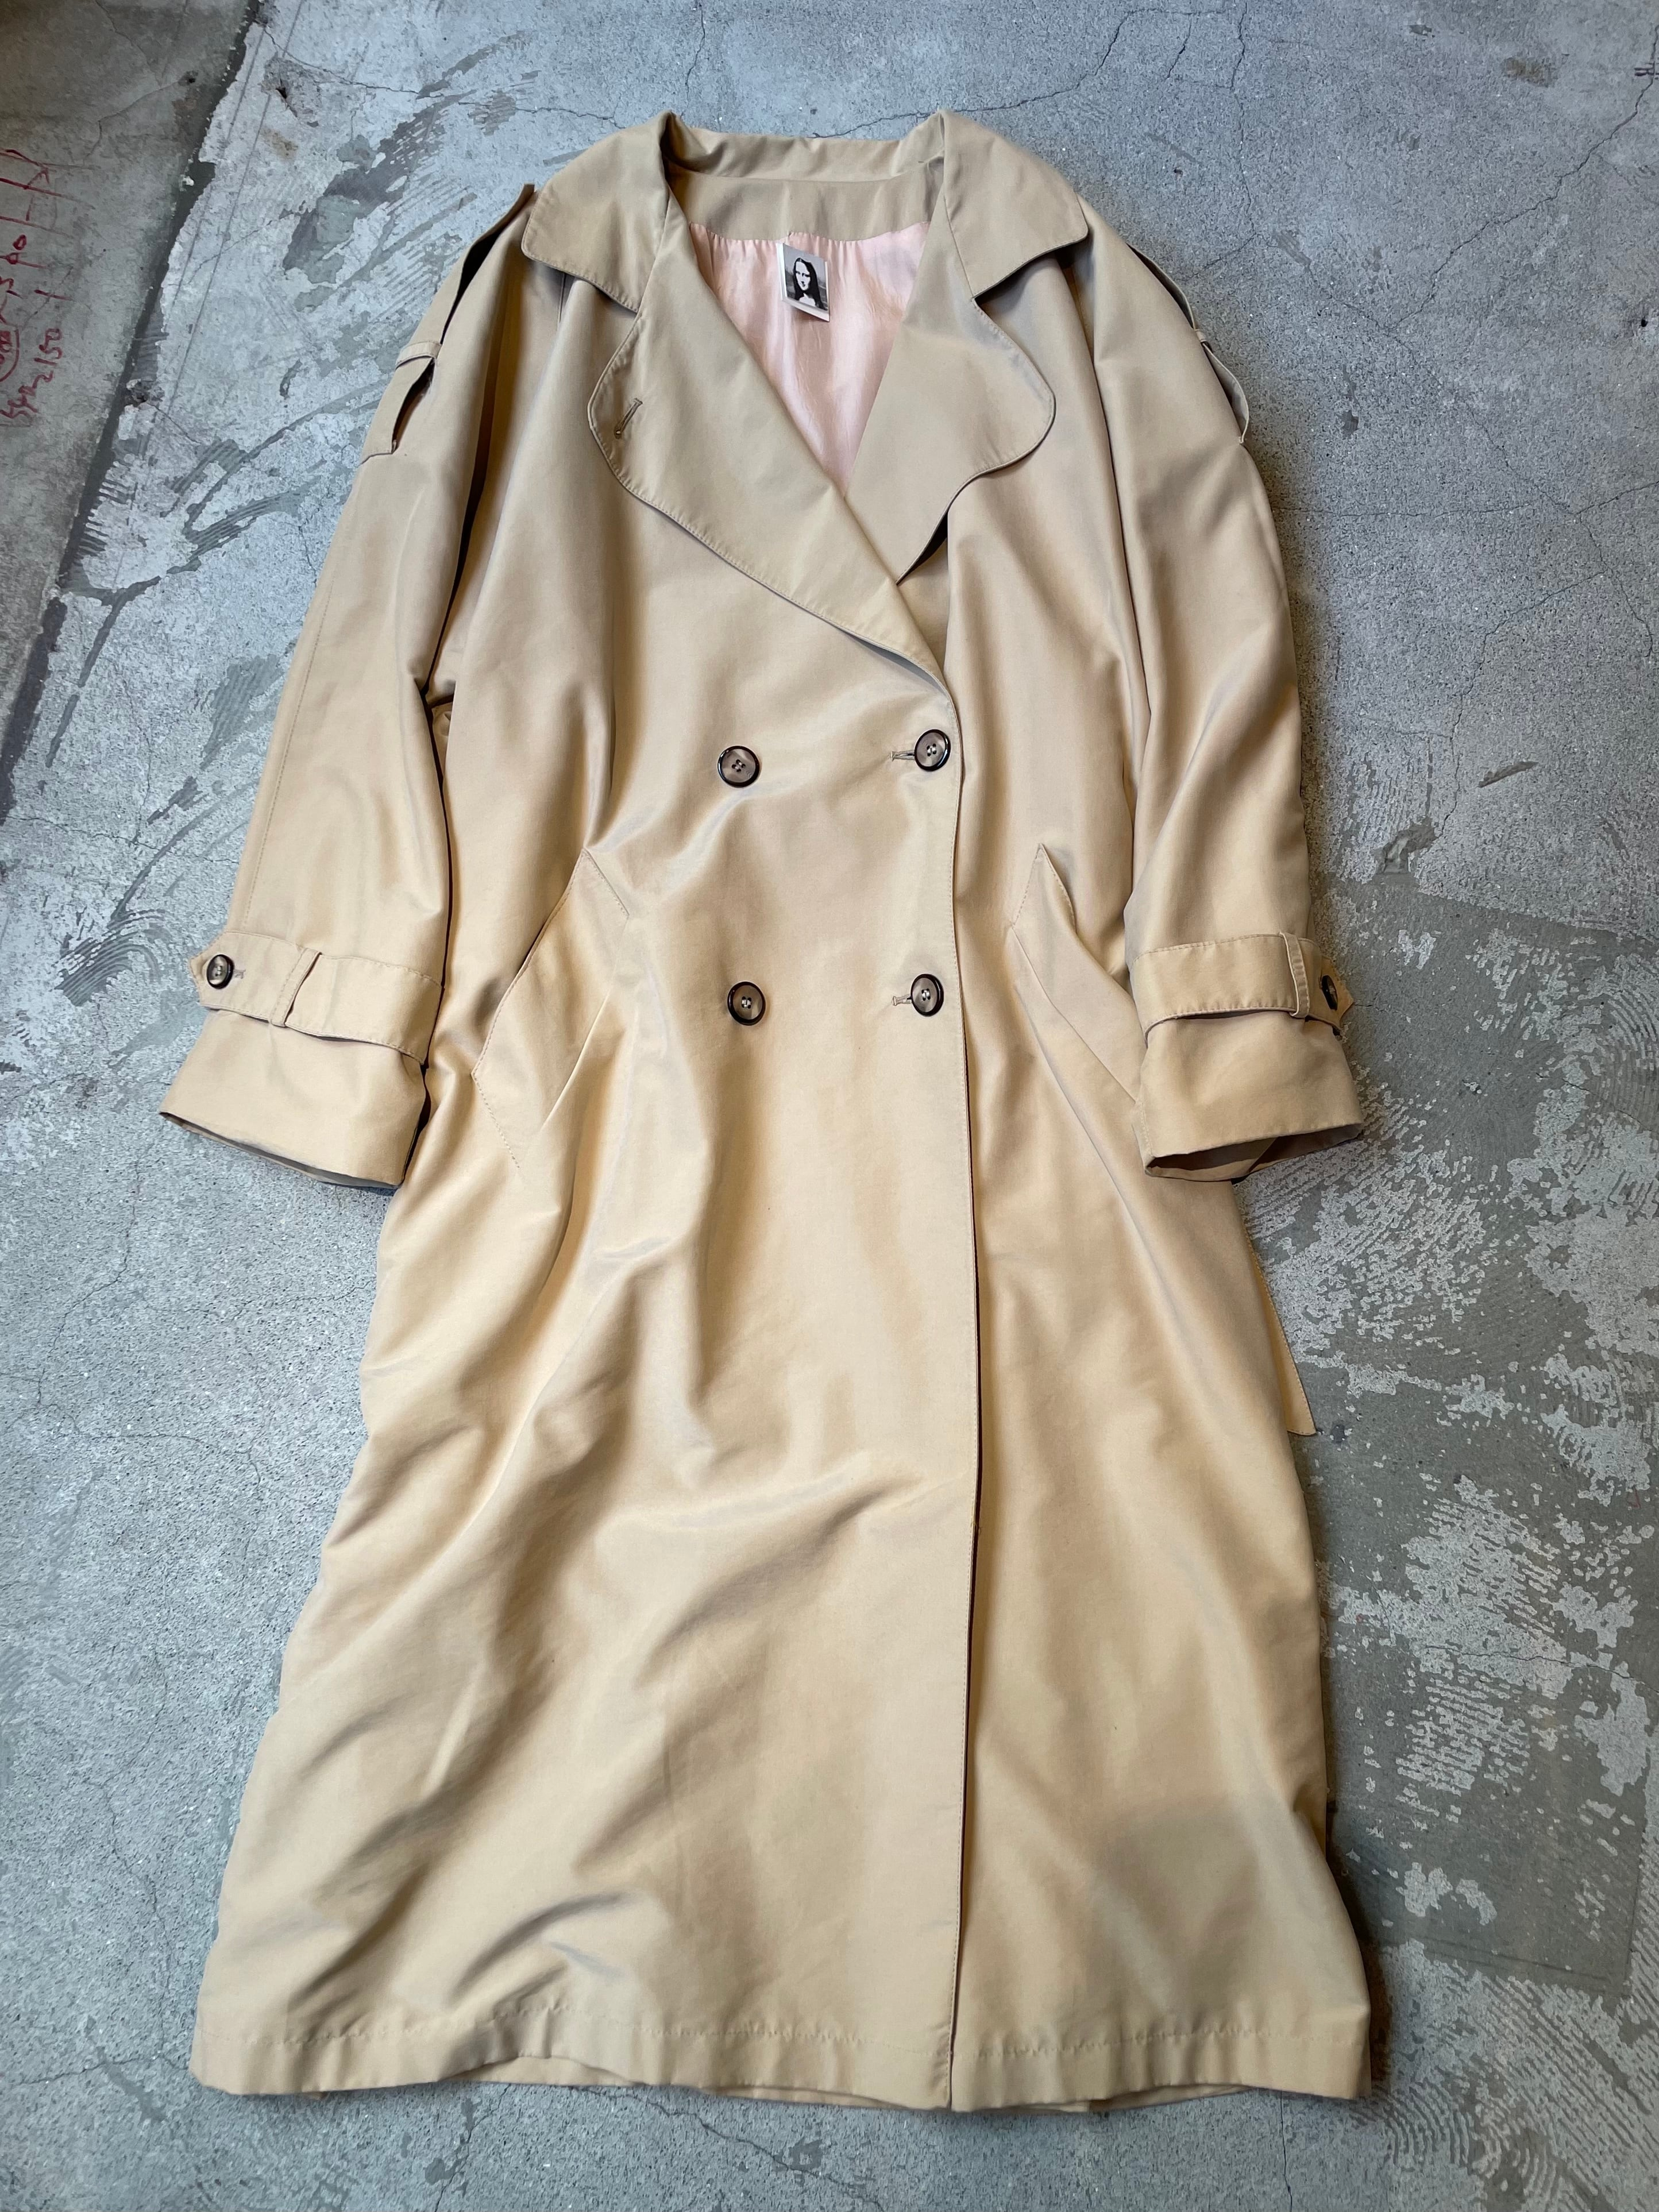 made in canada vintage trench coat